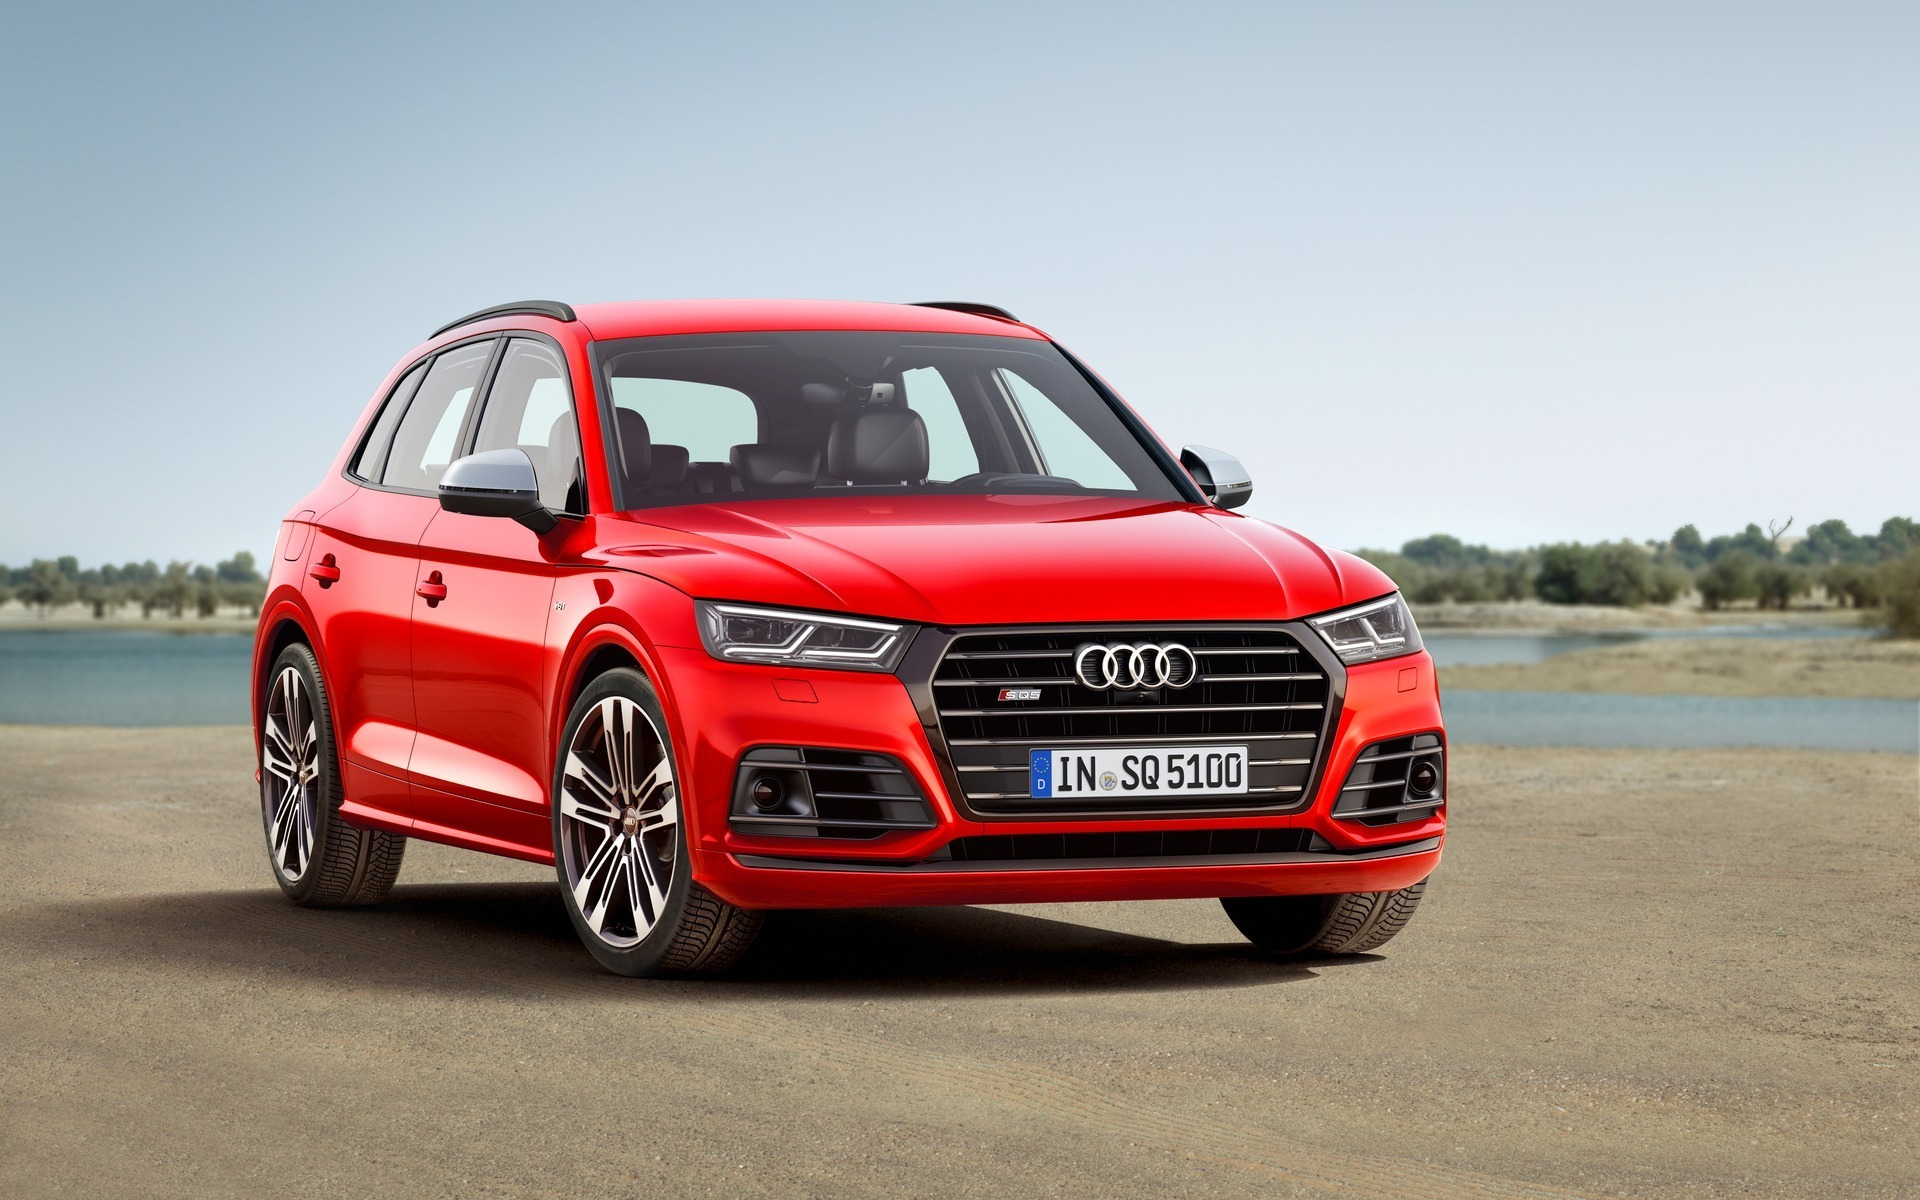 Le Meilleur Suv >> Audi Q5 The Car Guide S Best New Suv Of The Year For 2018